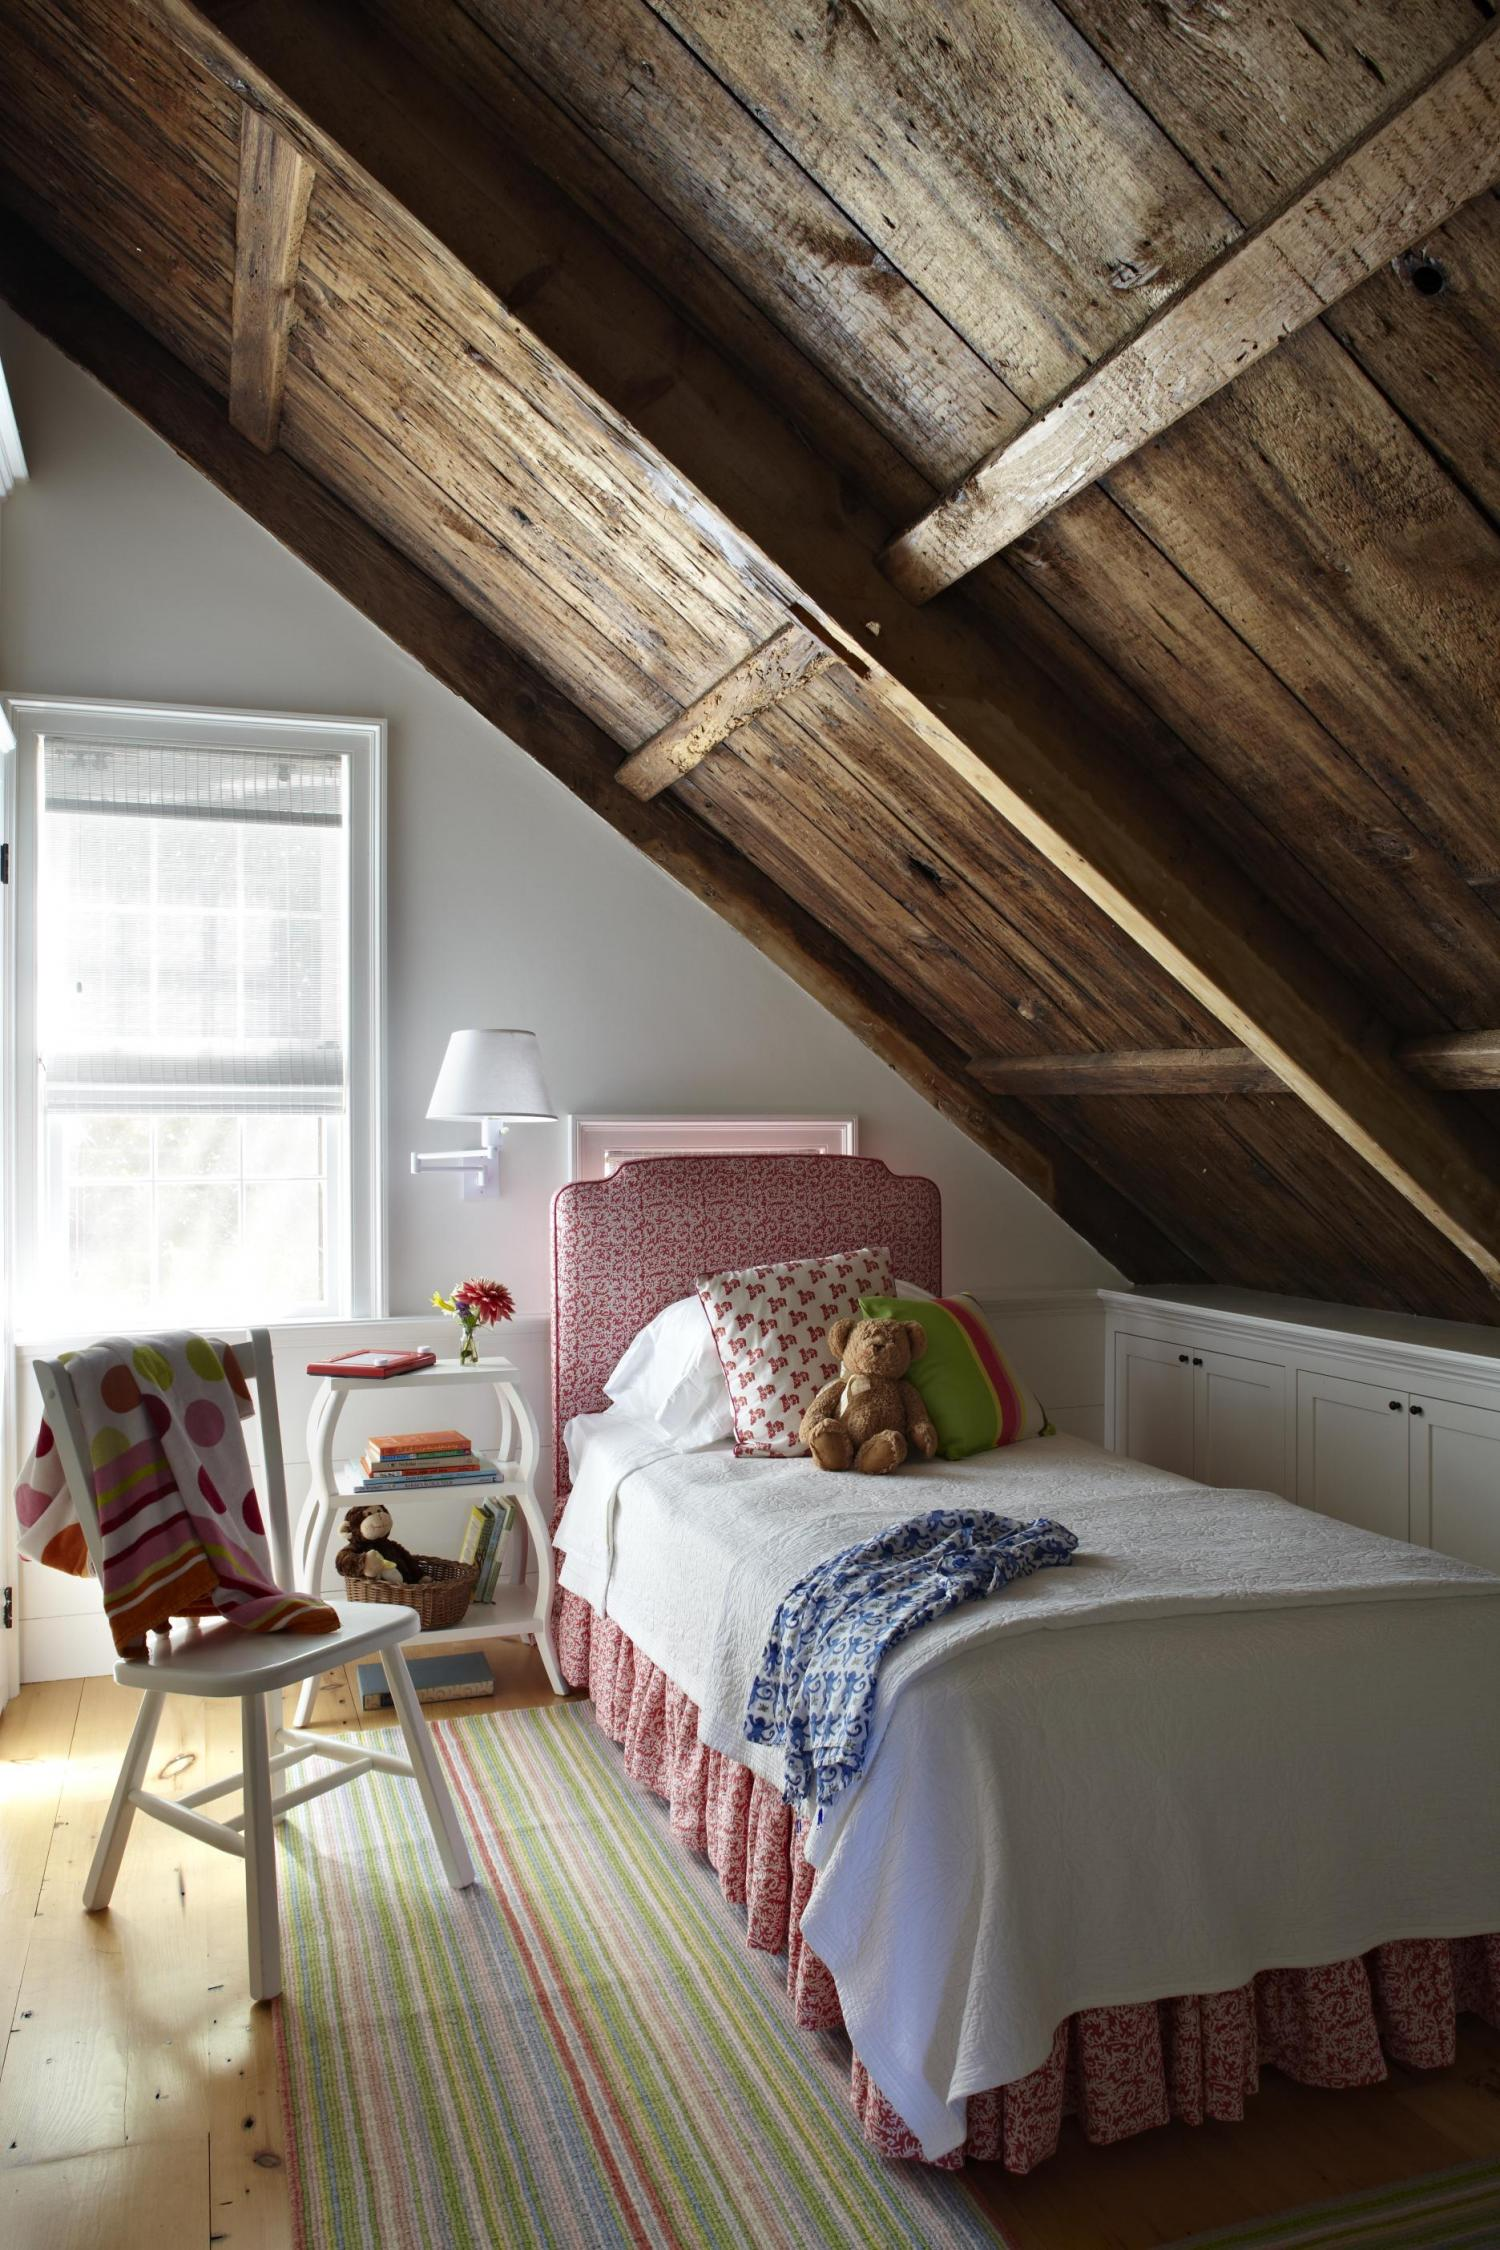 Bedrooms: Rustic & Romantic